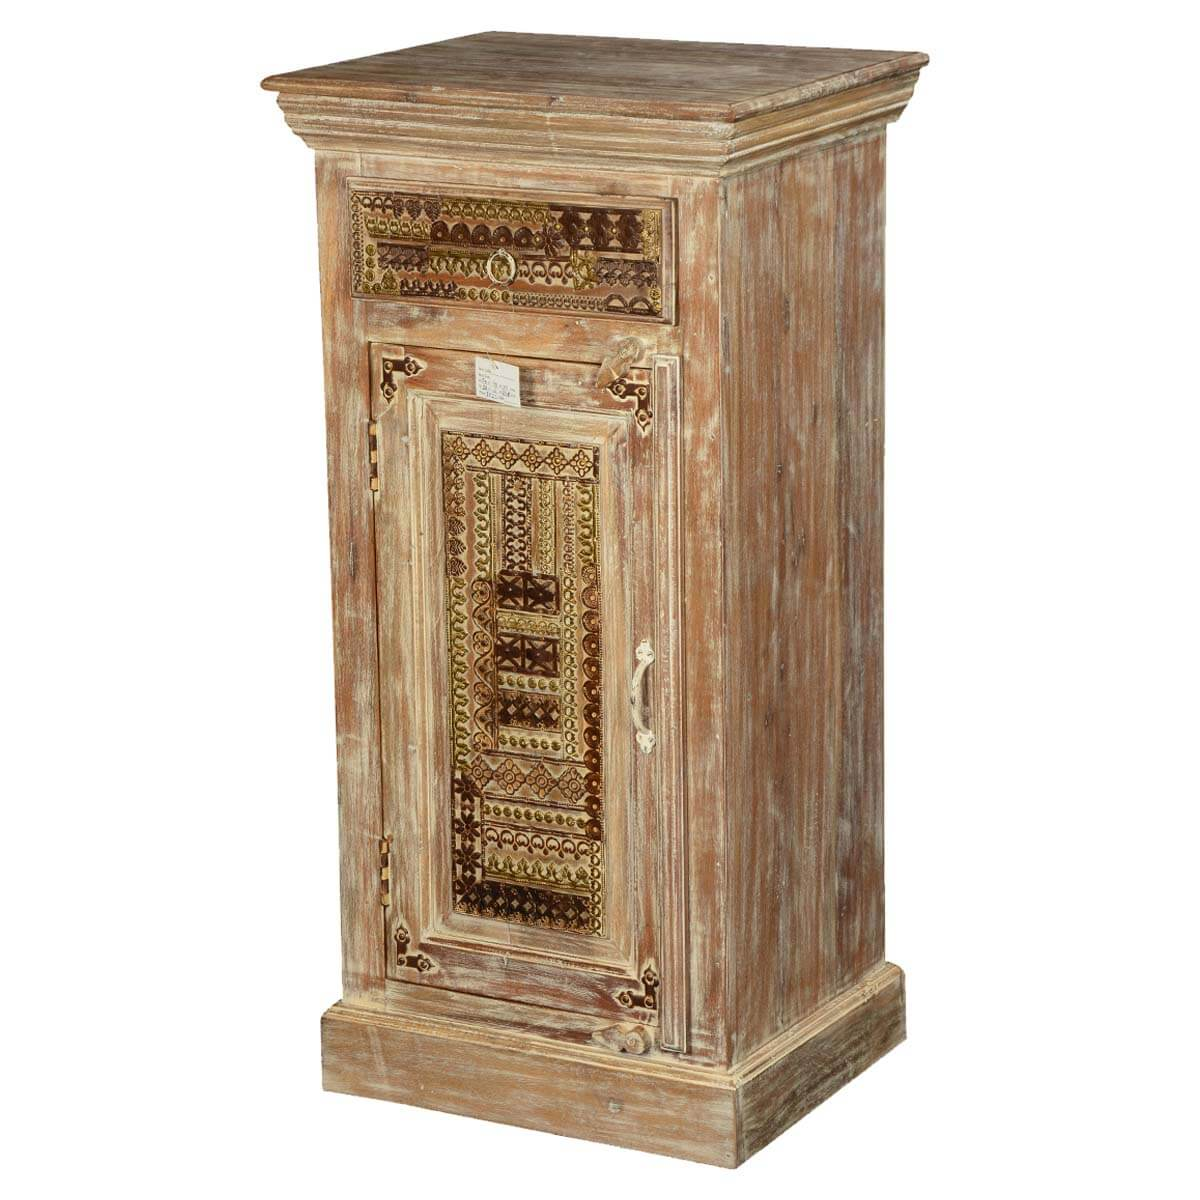 Modern Mosaic Mango Wood Single Door Freestanding Tower Cabinet